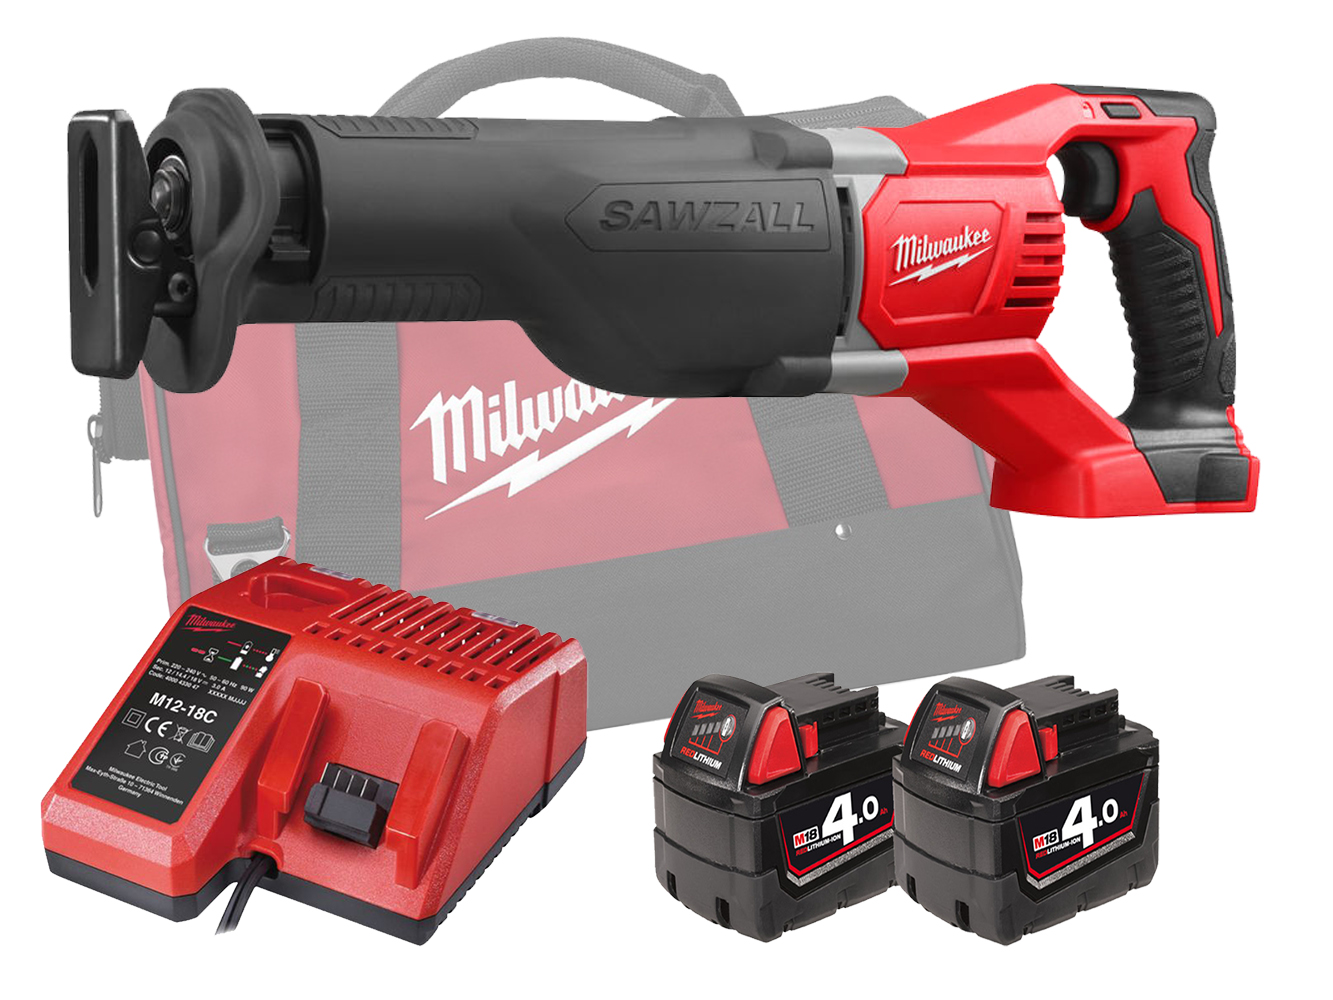 MILWAUKEE 18V BRUSHED RECIPROCATING SAW - M18BSX - 4.0AH PACK